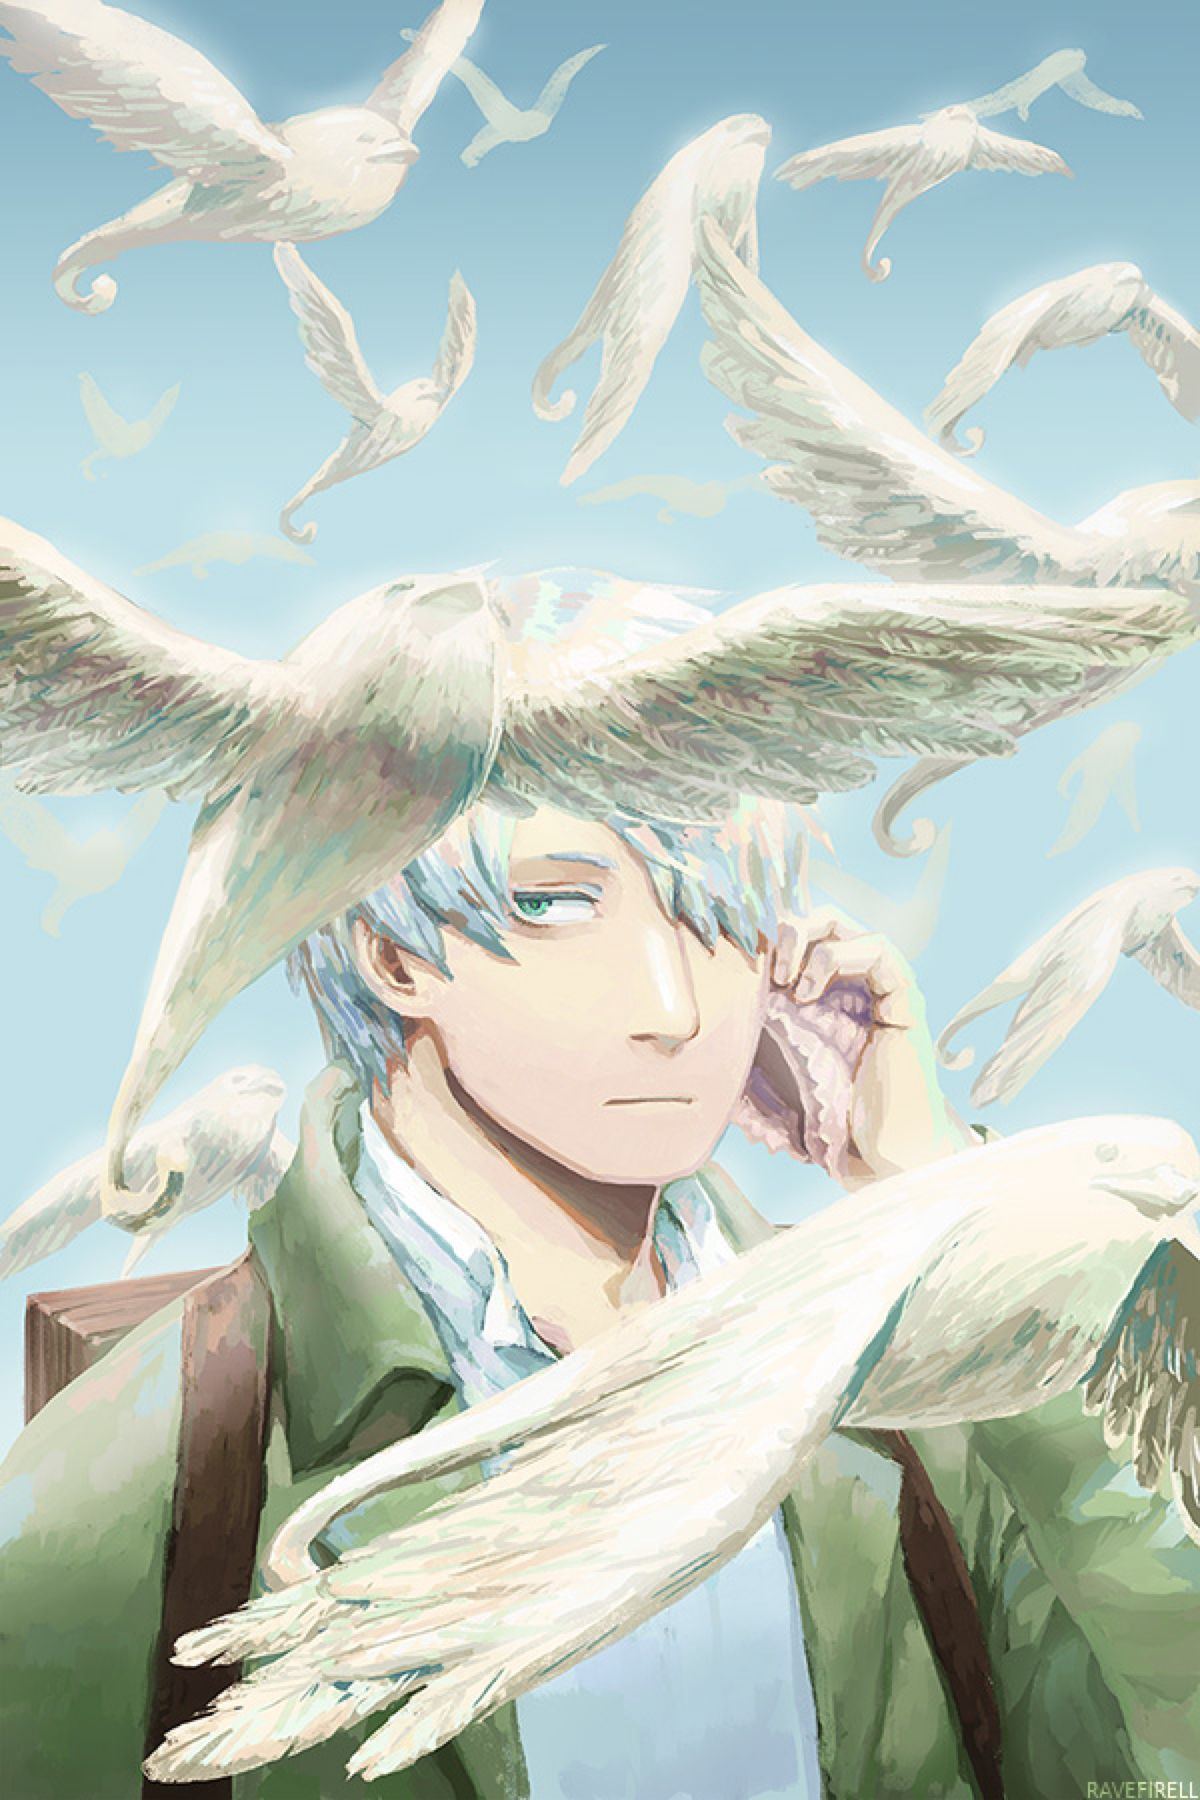 MushiShi by ravefirell on DeviantArt Anime, Art, T art